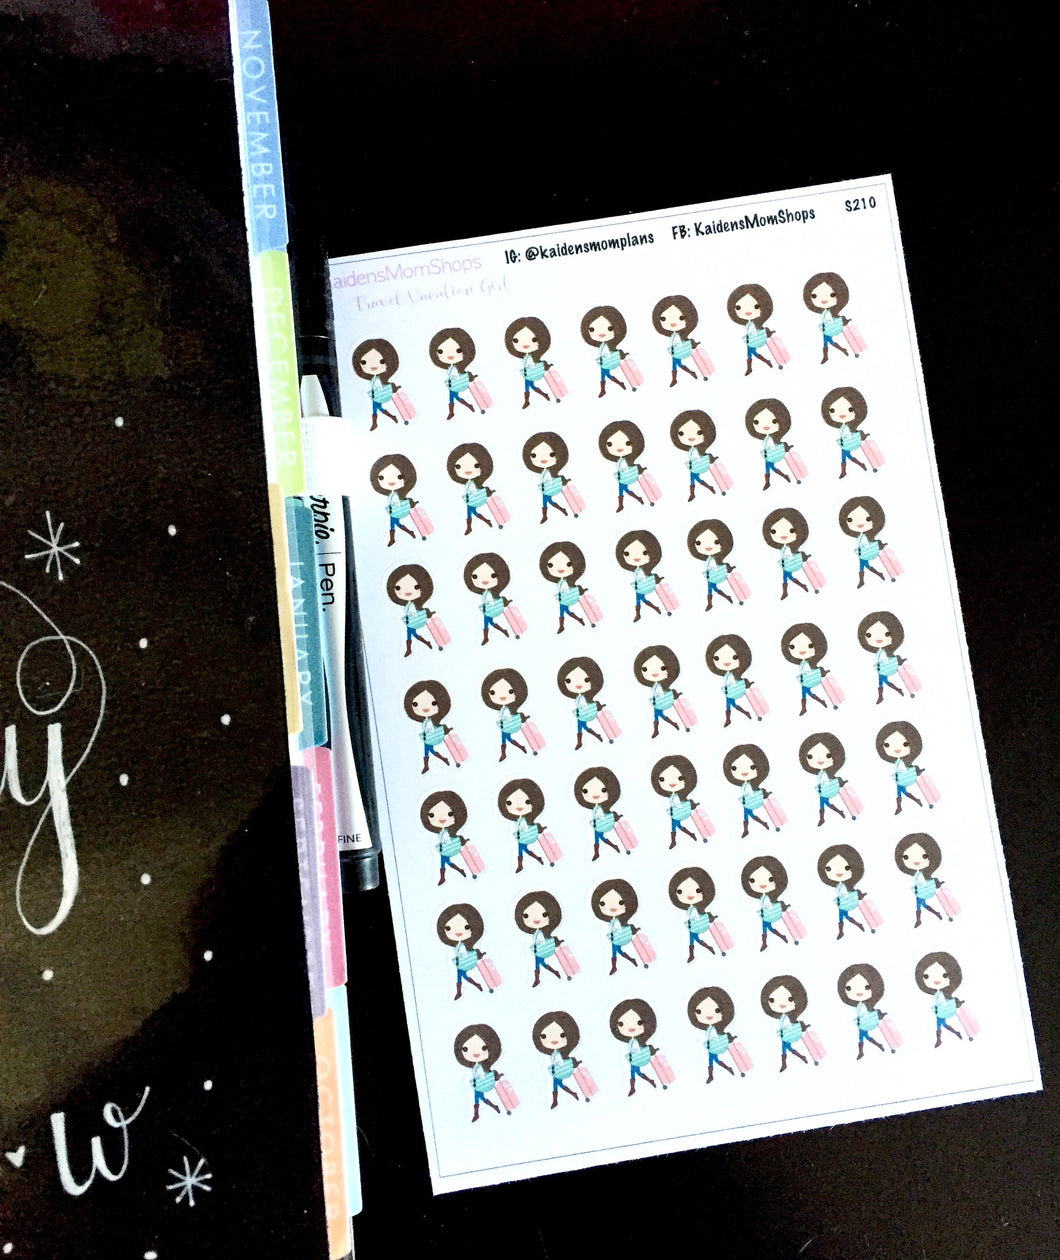 Travel Vacation Girl Stickers - S211